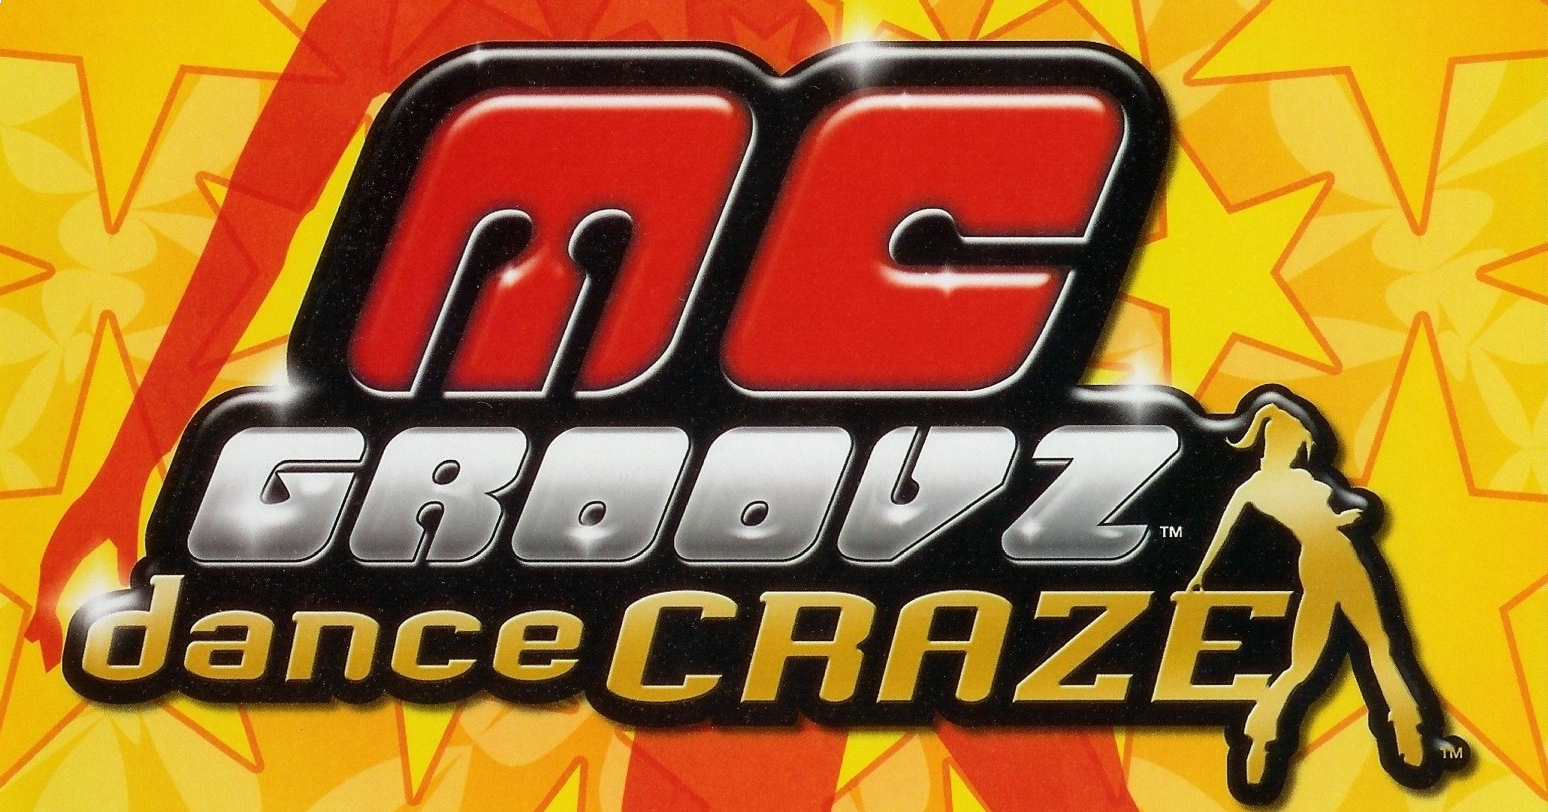 Banner MC Groovz Dance Craze